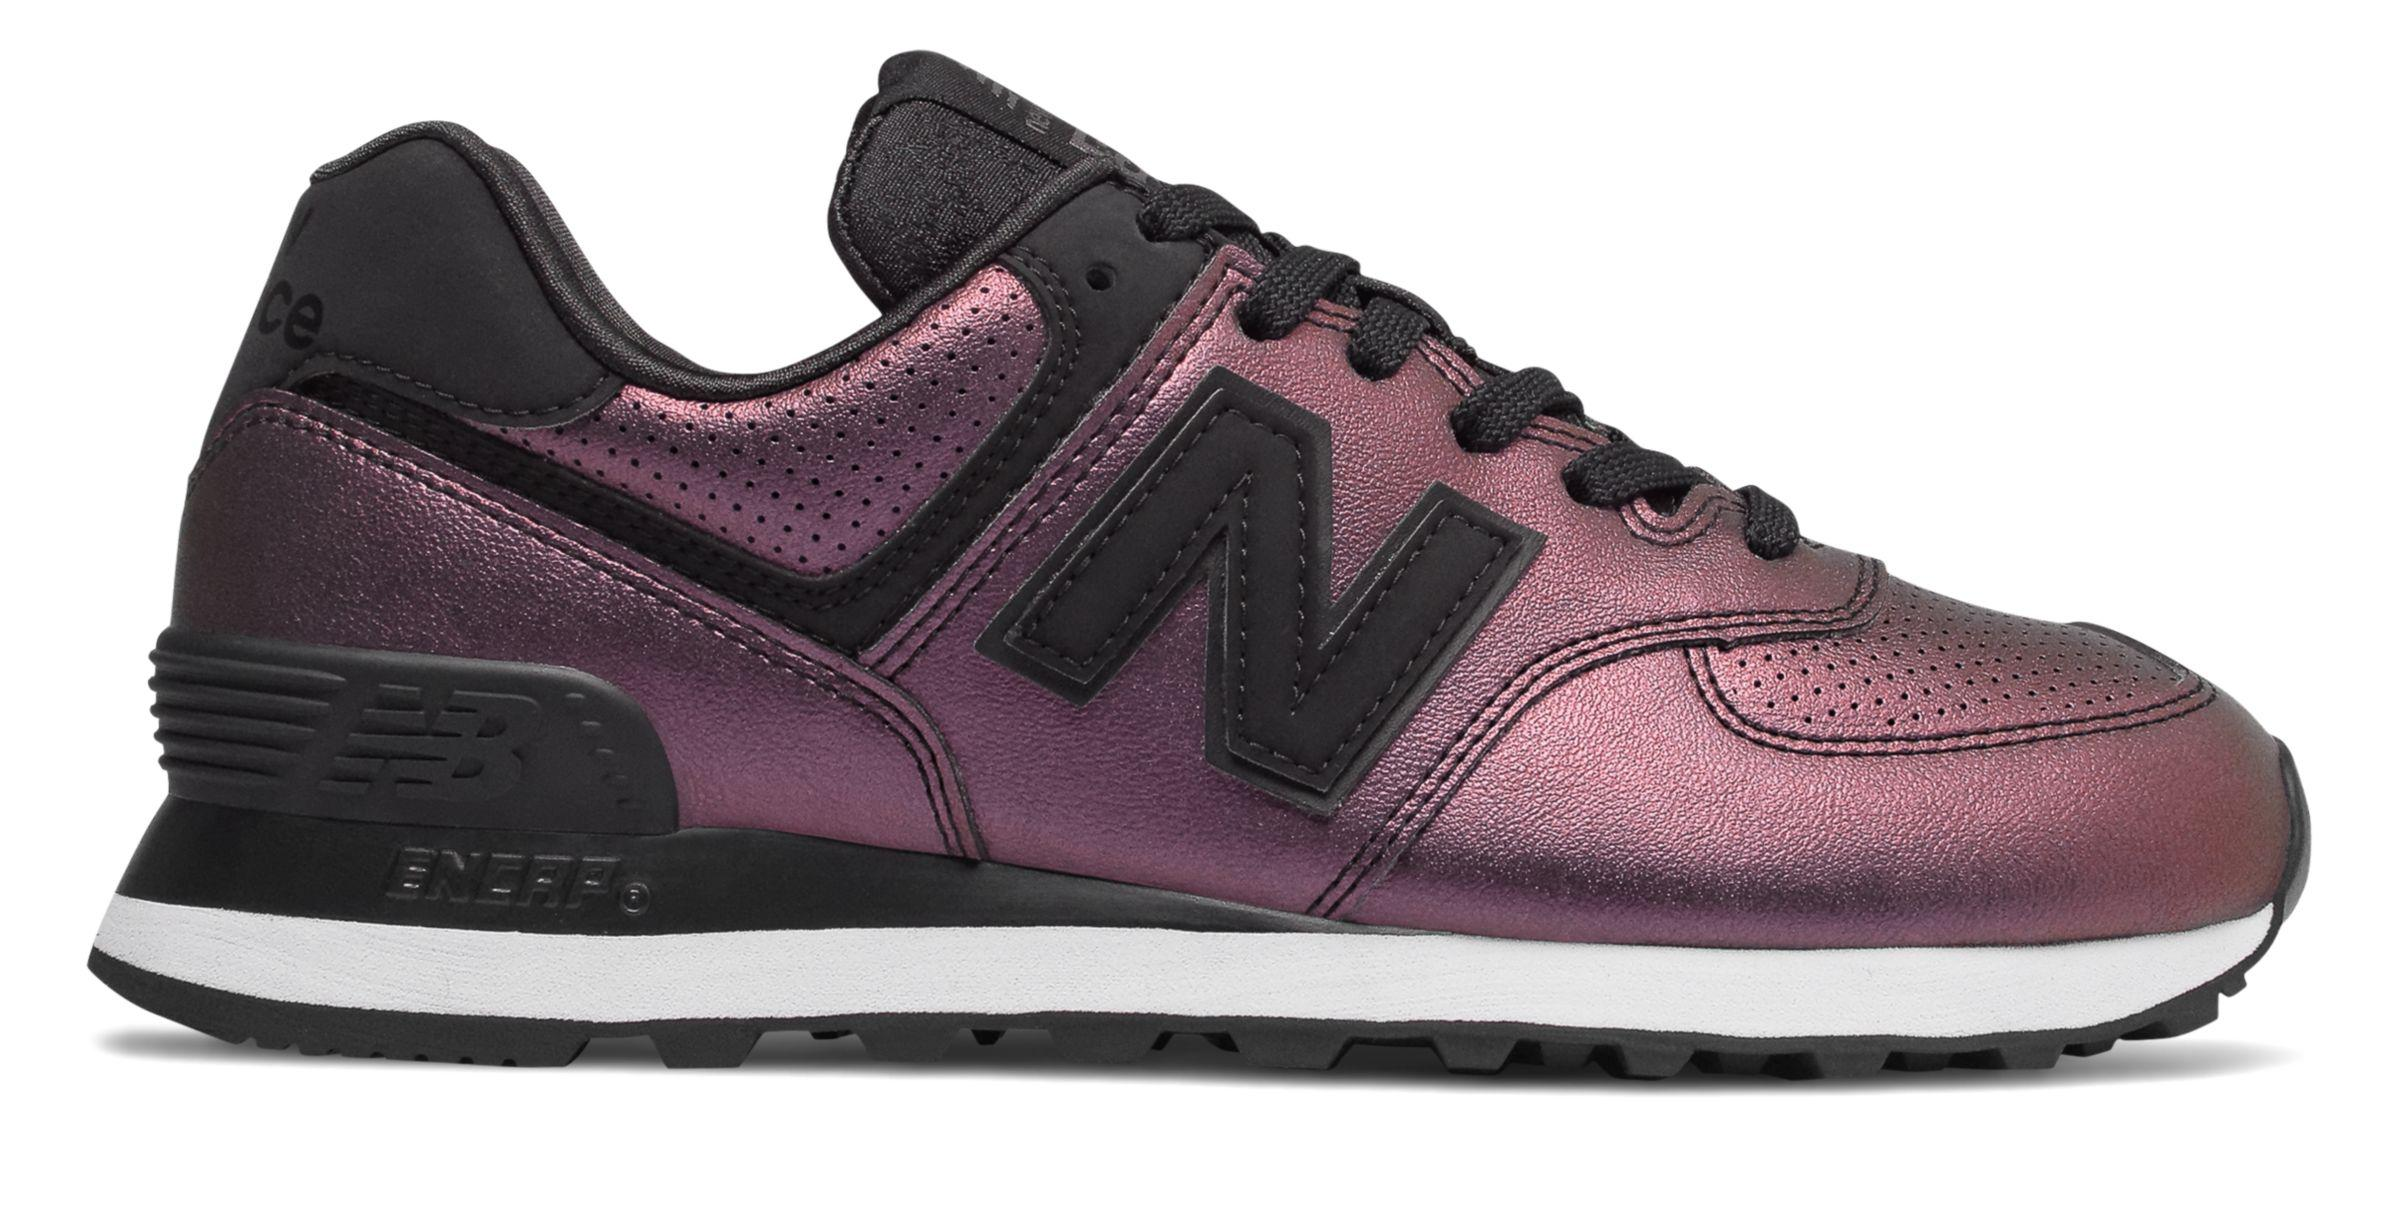 New Balance Leather 574 Sheen Pack in Black - Lyst